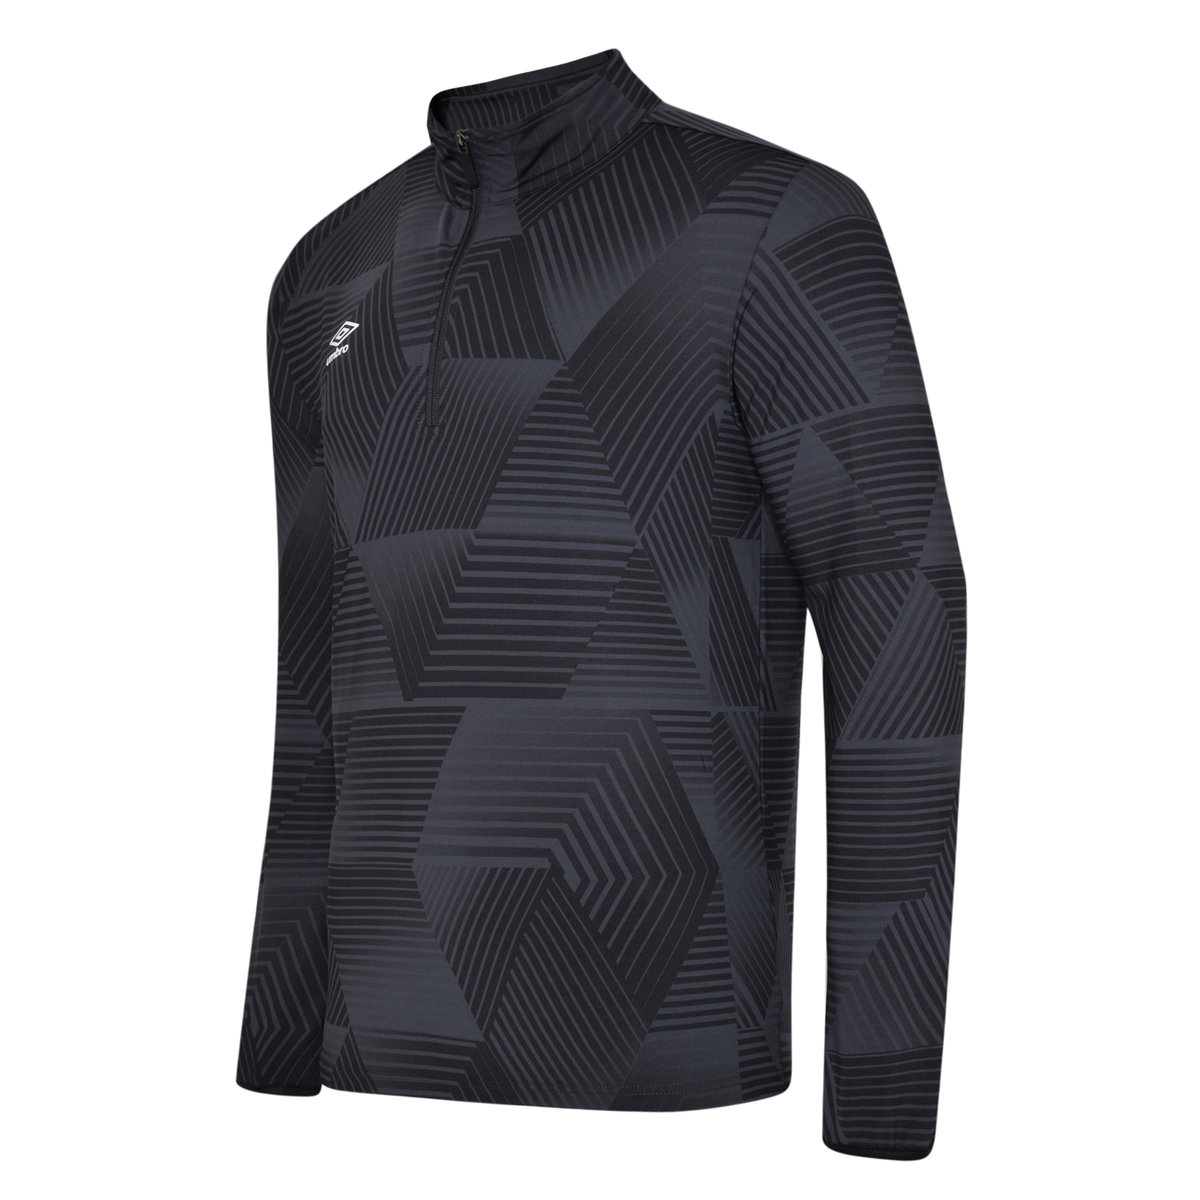 MAXIUM 1/4 ZIP TRAINING TOP